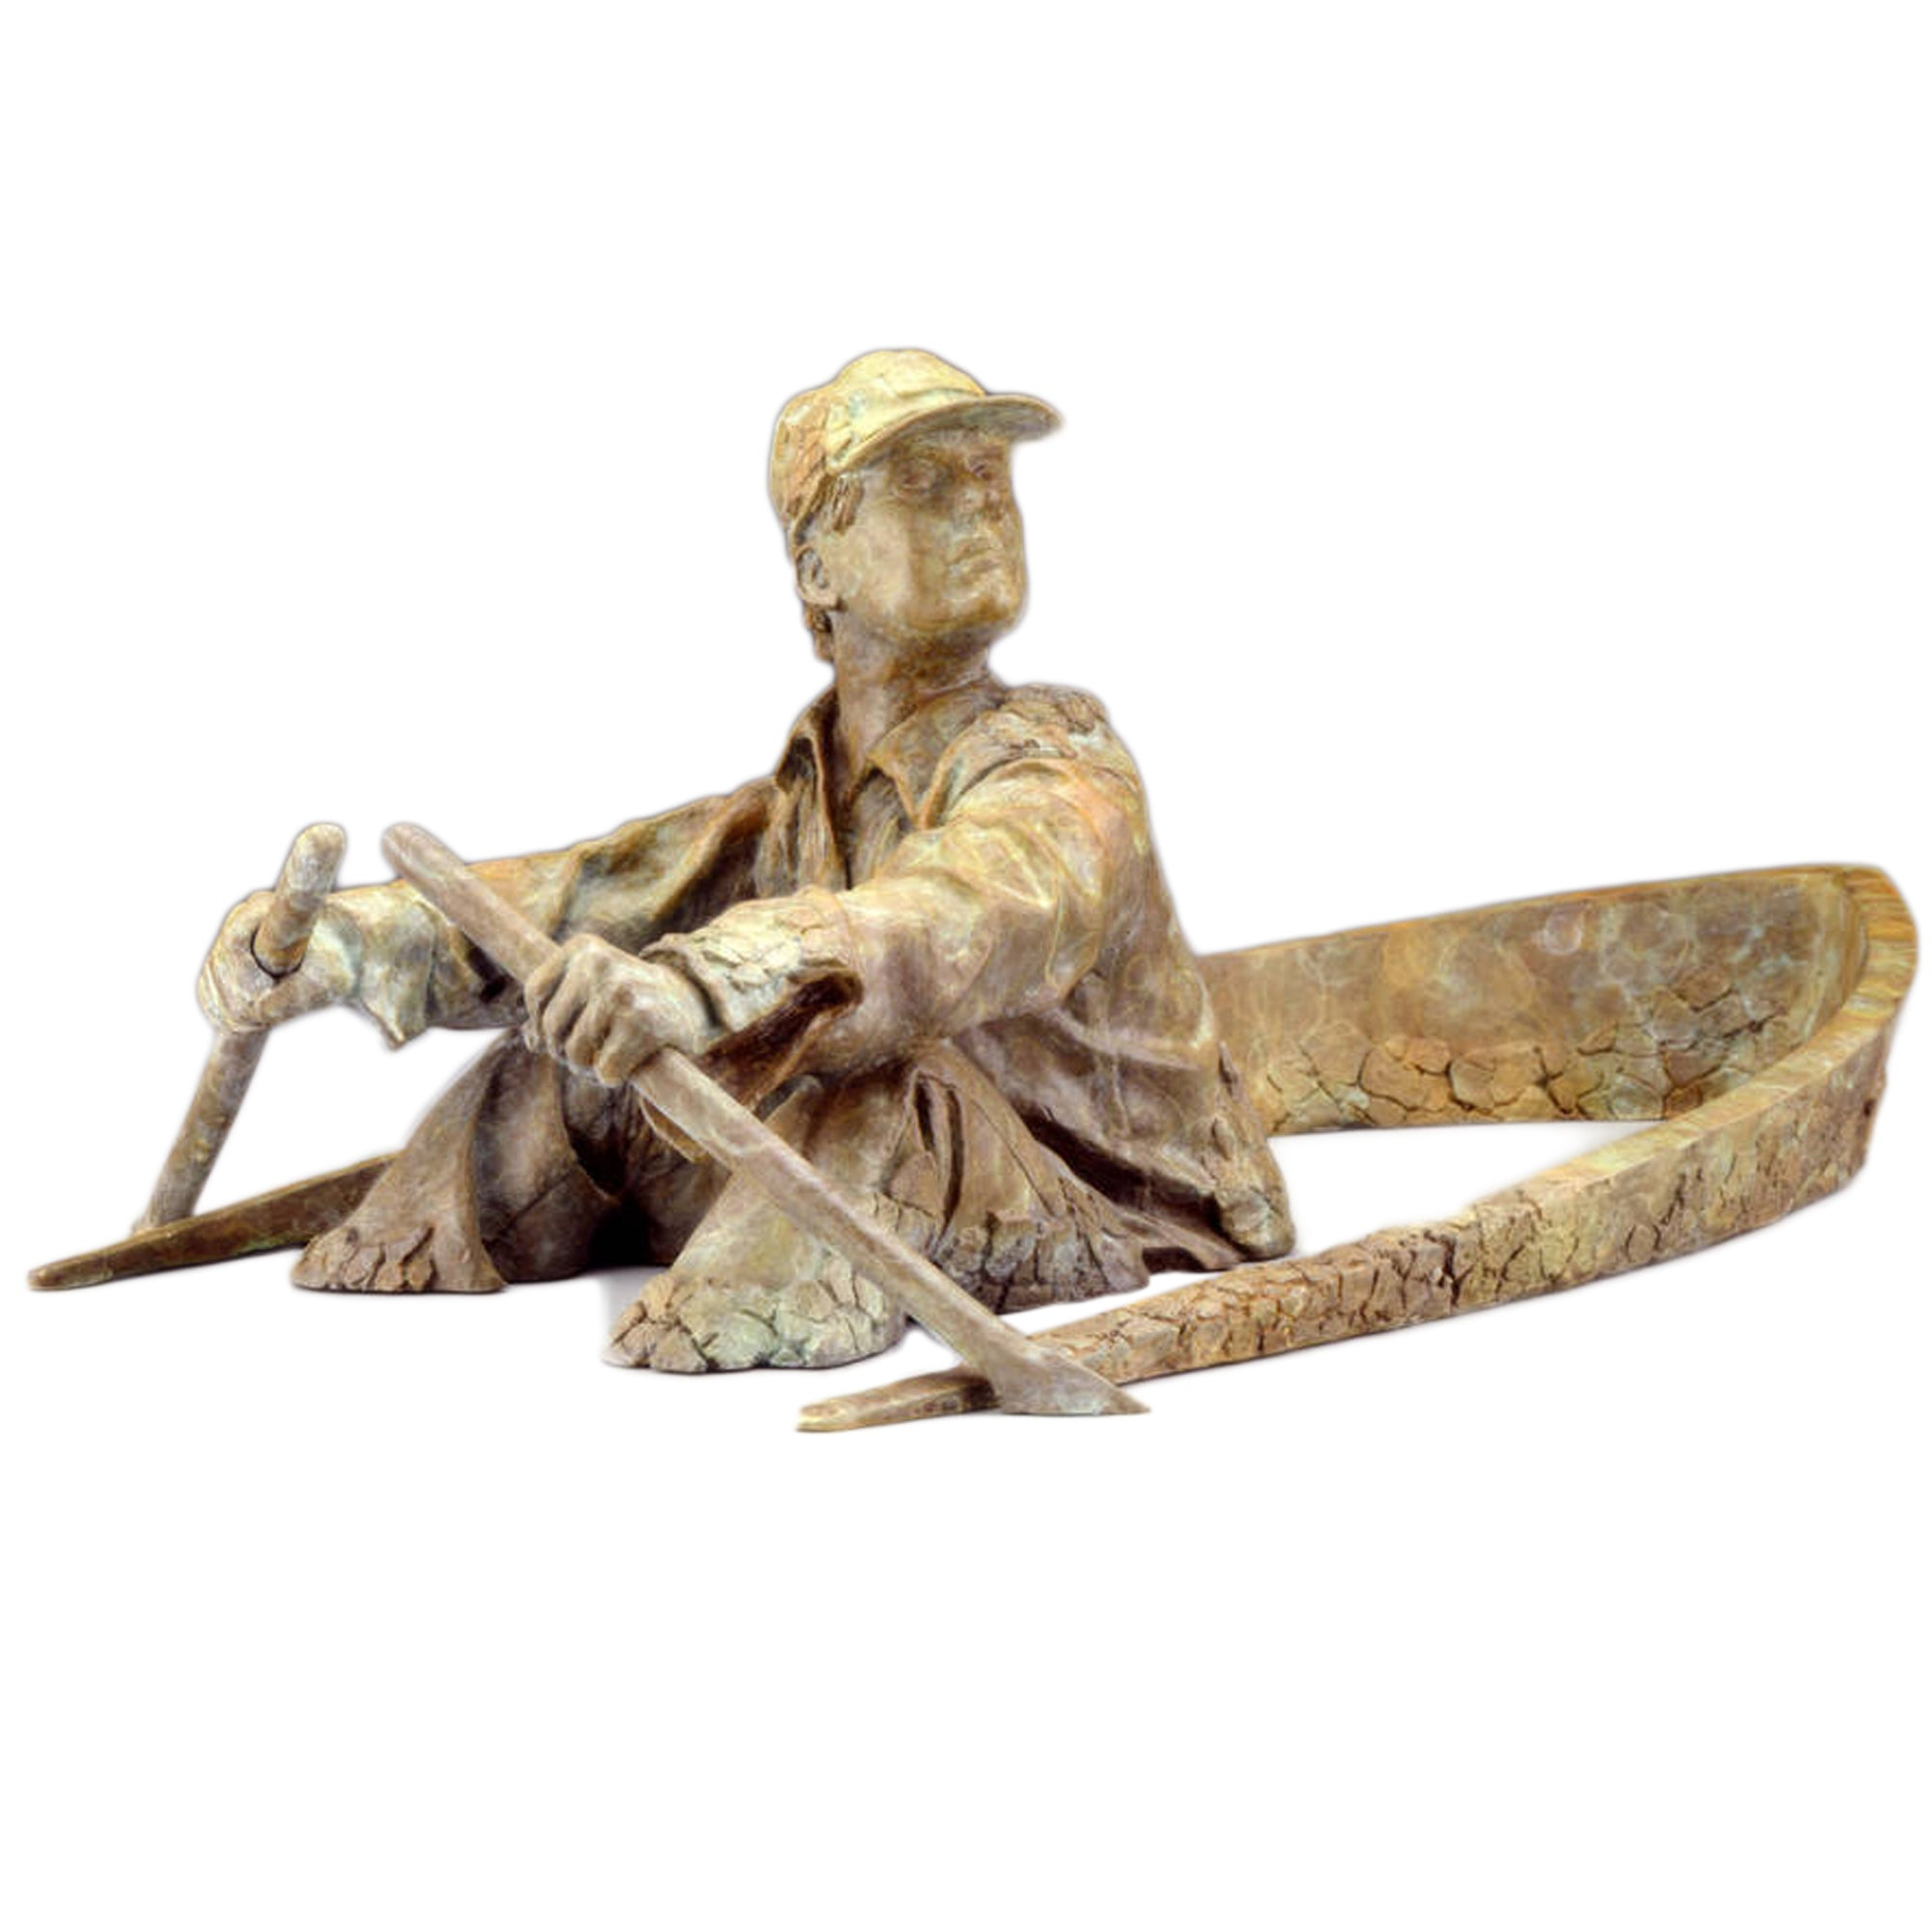 Original Bronze Sculpture: Oarsman, Artist: David Phelps